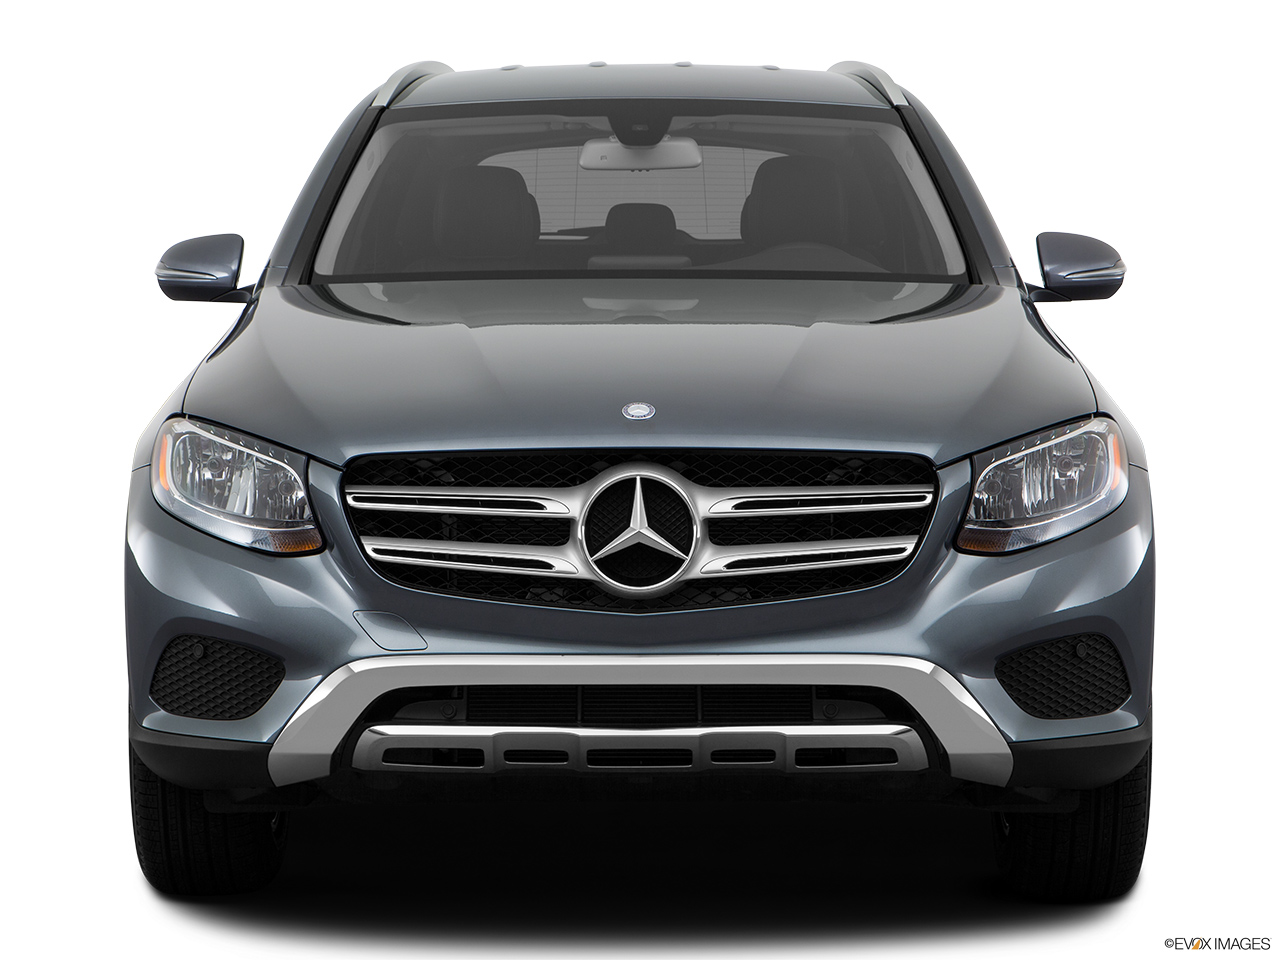 Car pictures list for mercedes benz glc class 2016 glc 250 for Mercedes benz list